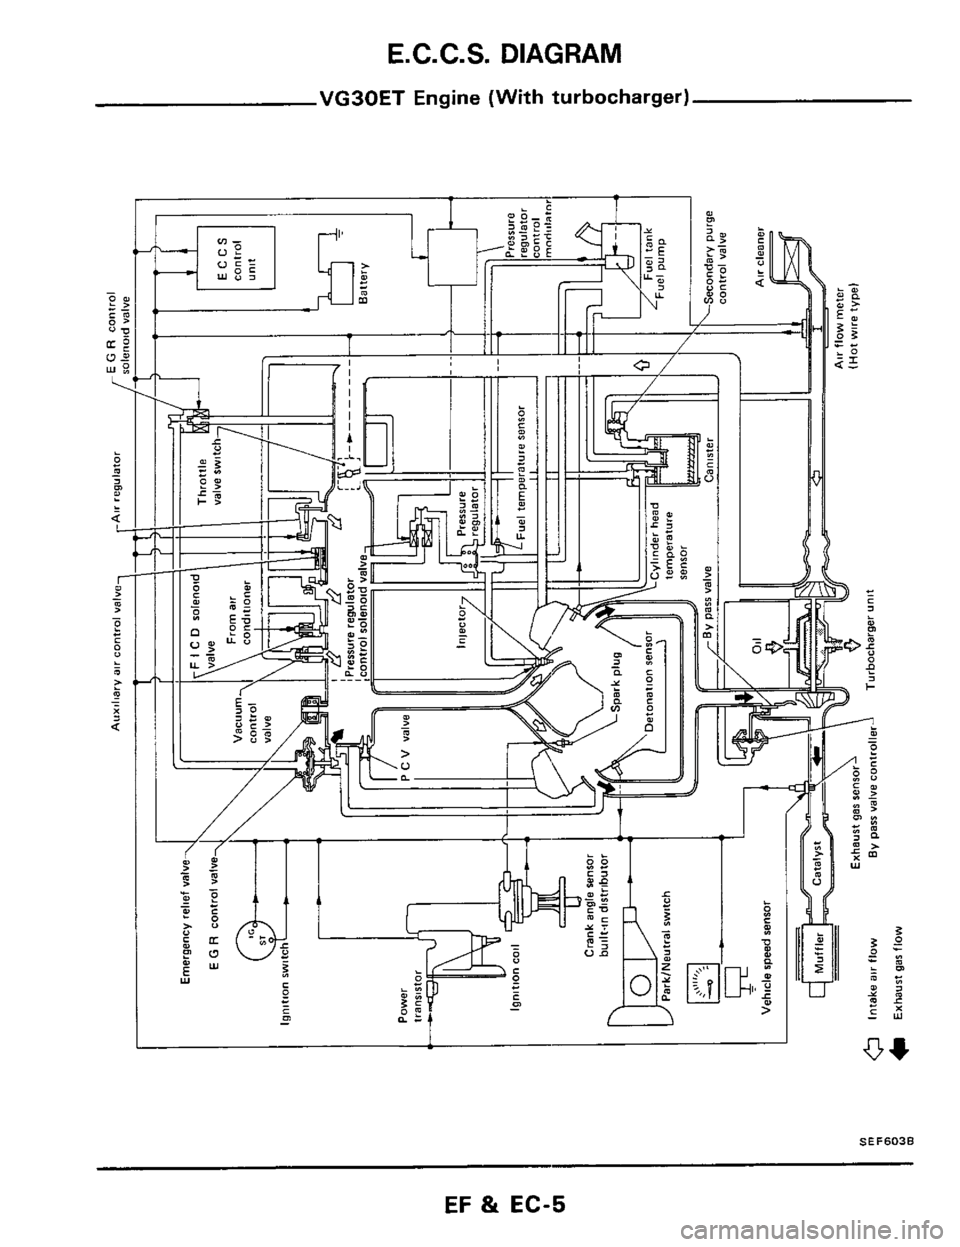 Nissan 300zx 1984 z31 engine fuel and emission control system workshop manual page 5 e c c s diagram